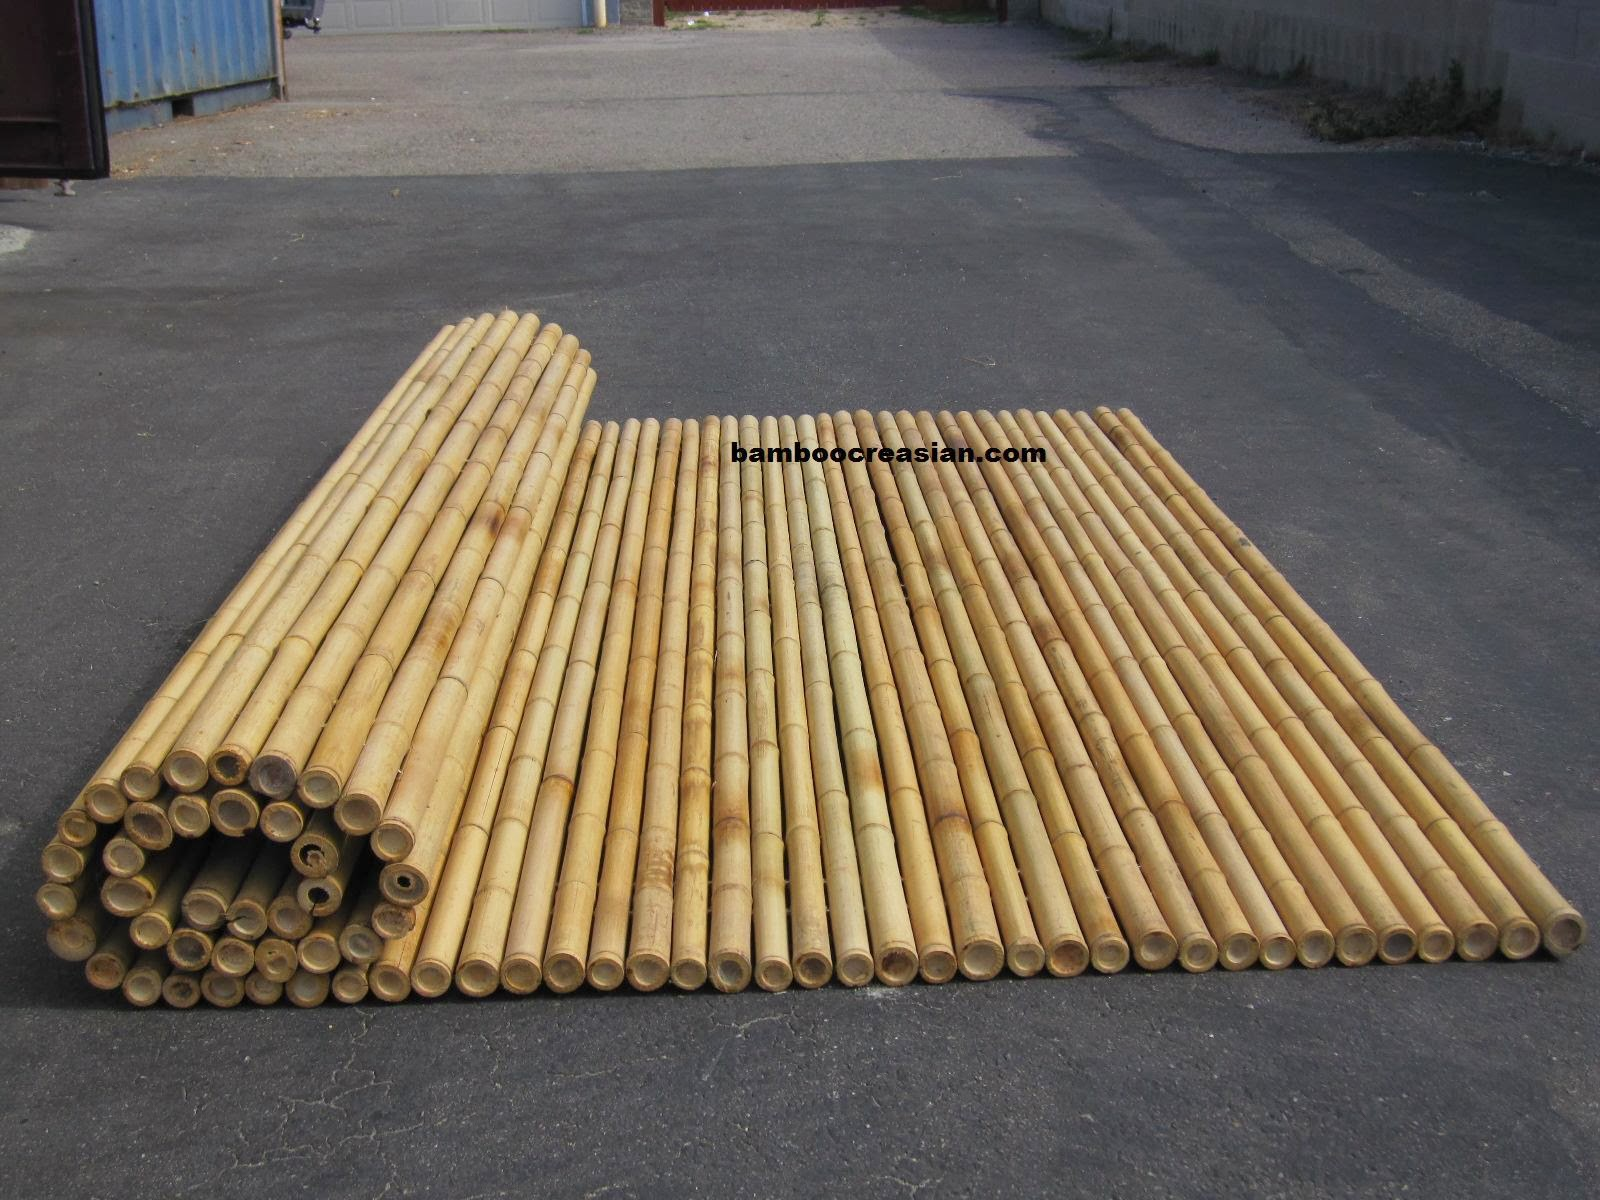 Allbamboo Product4sale Decorative Bamboo~fencing/wainscot Ply Paneling/poles/palapa+umbrella/chickee:  Affordable Fence Supply Bamboo Roll/panel Rolled ...